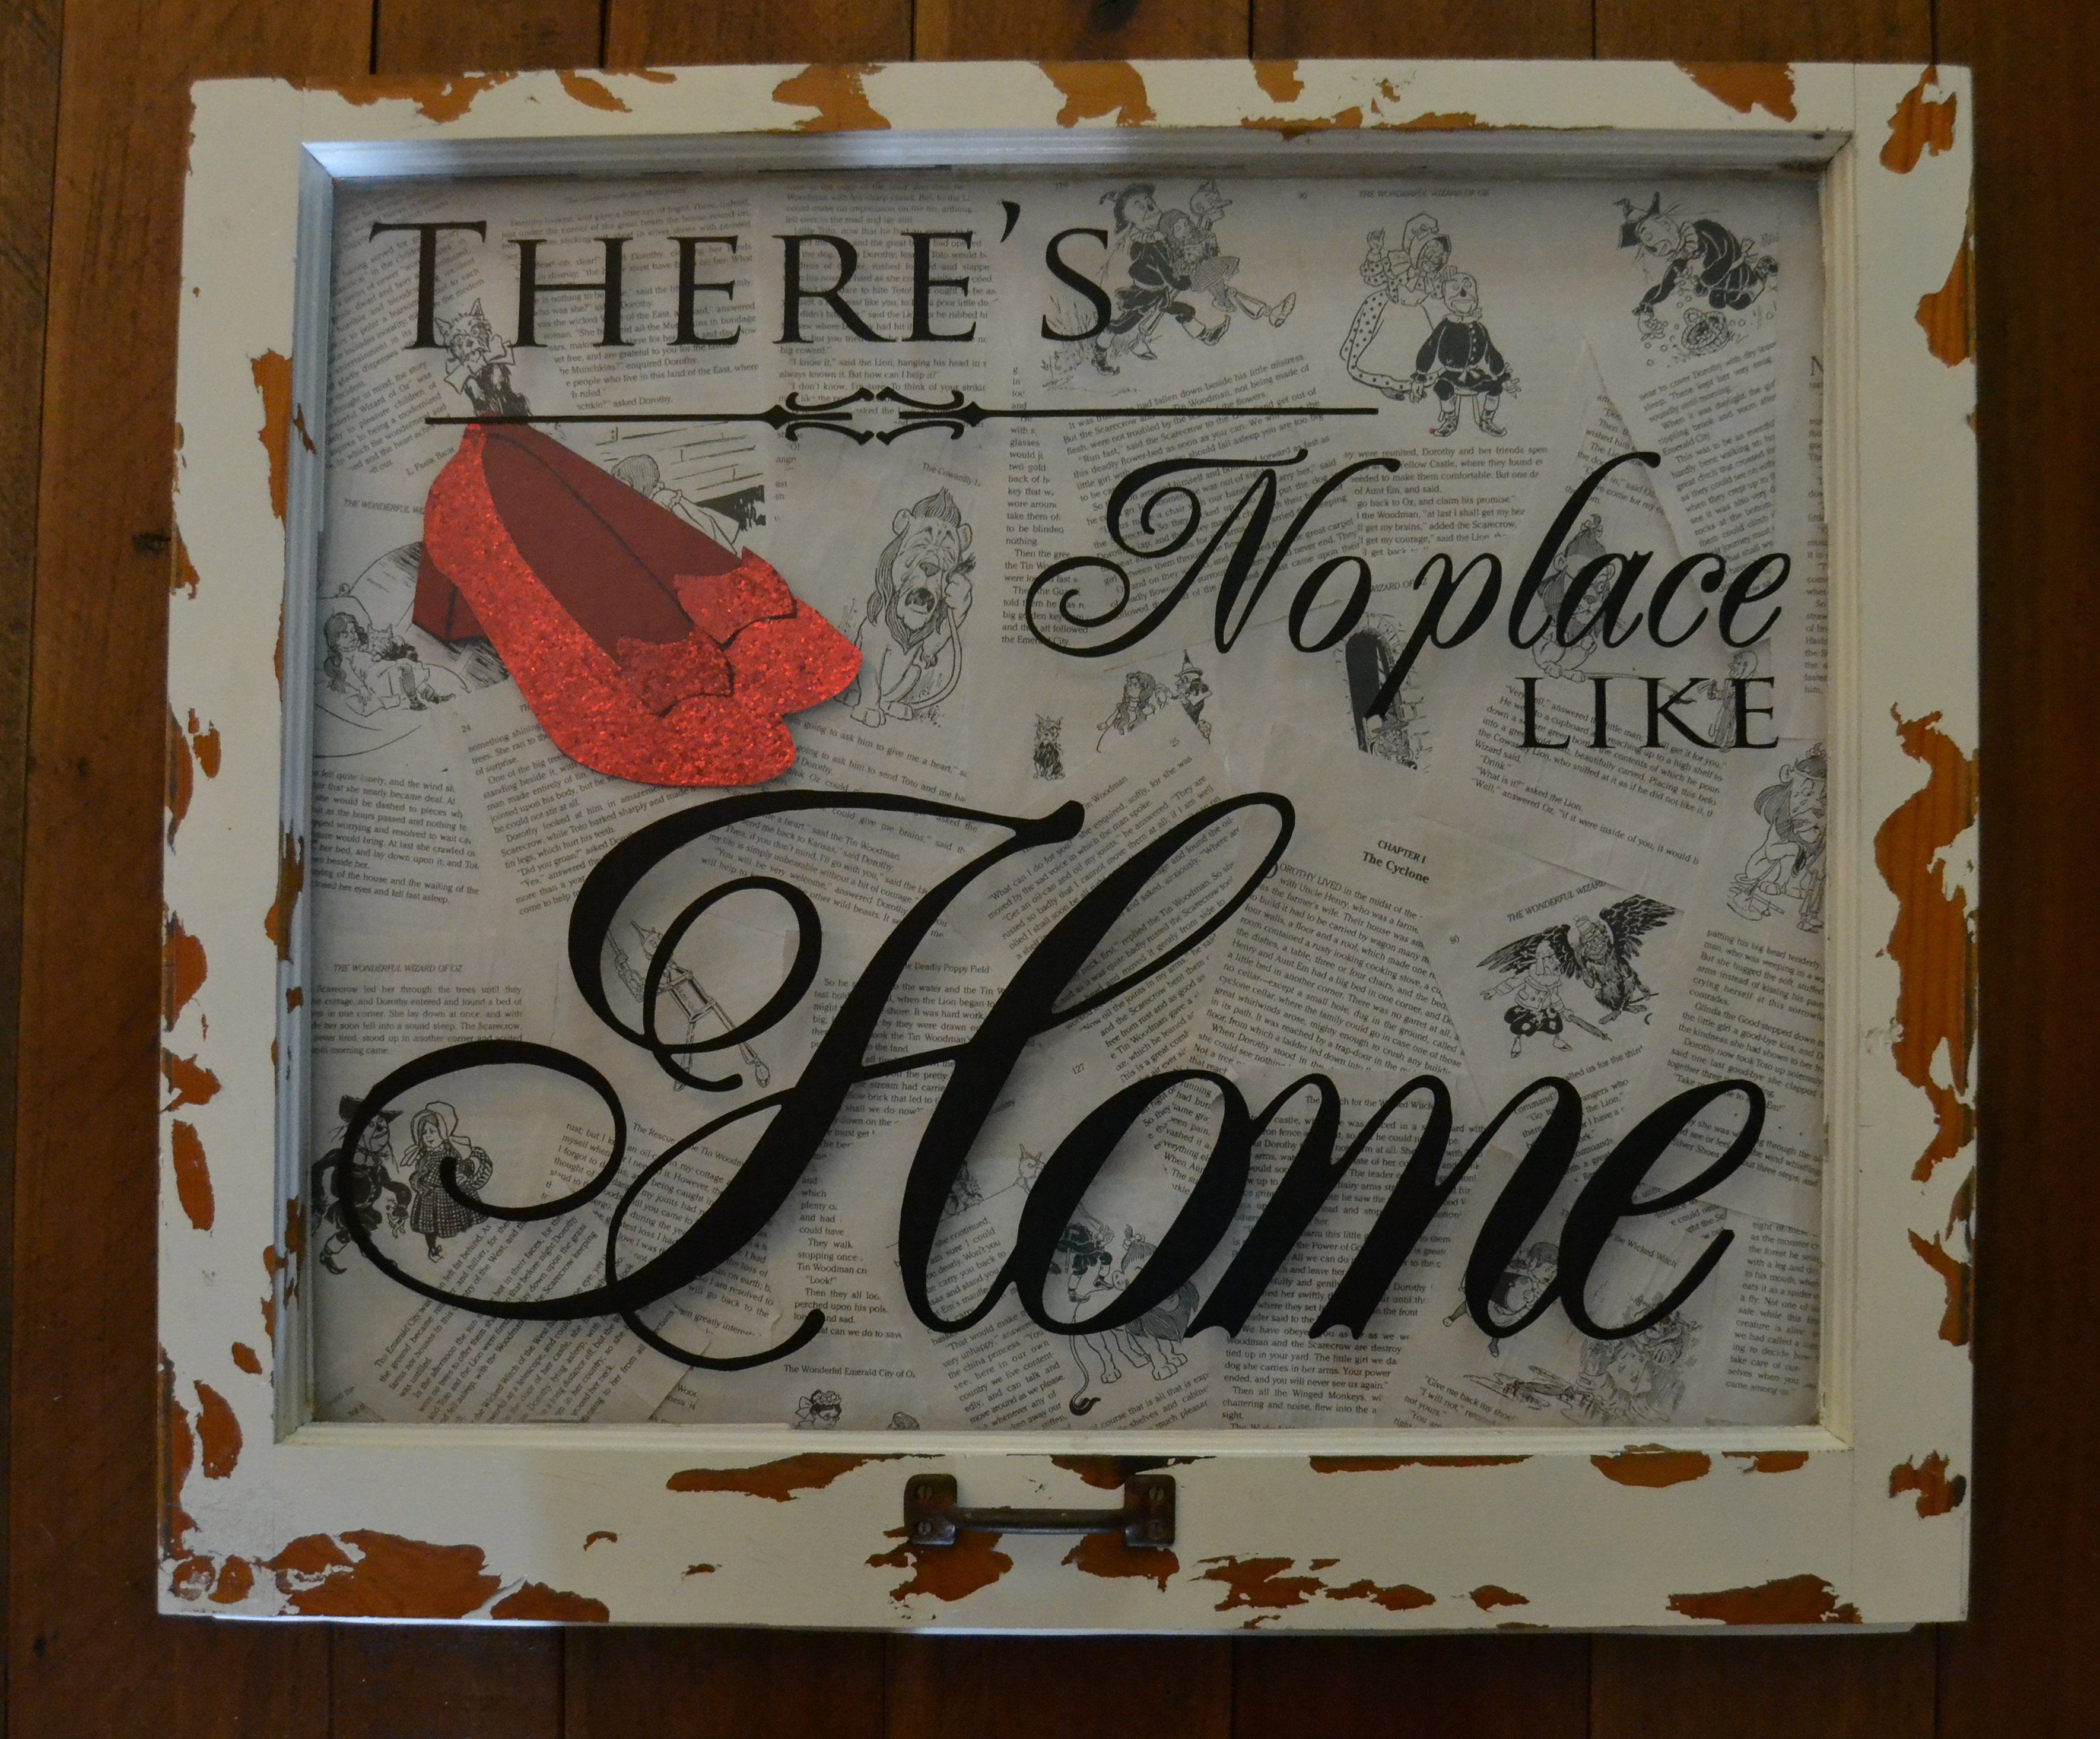 There S No Place Like Home Shadowbox From Vintage Window The Background Is Pages Wizard Of Oz And Course Dorothy Shoes Are Red Glitter